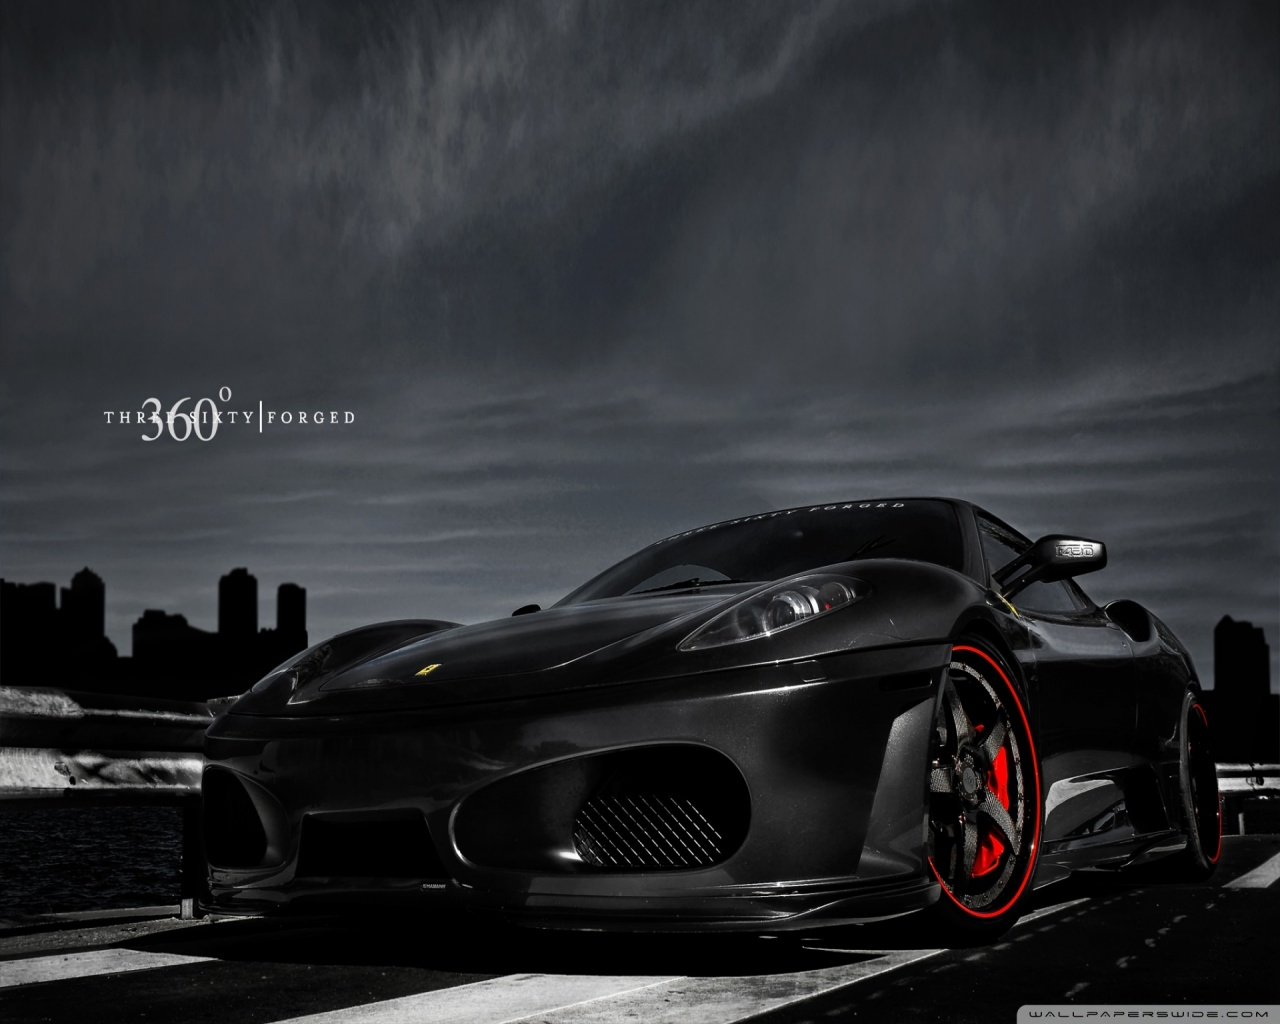 1280x1024 Ferrari 360 Forged Desktop Pc And Mac Wallpaper